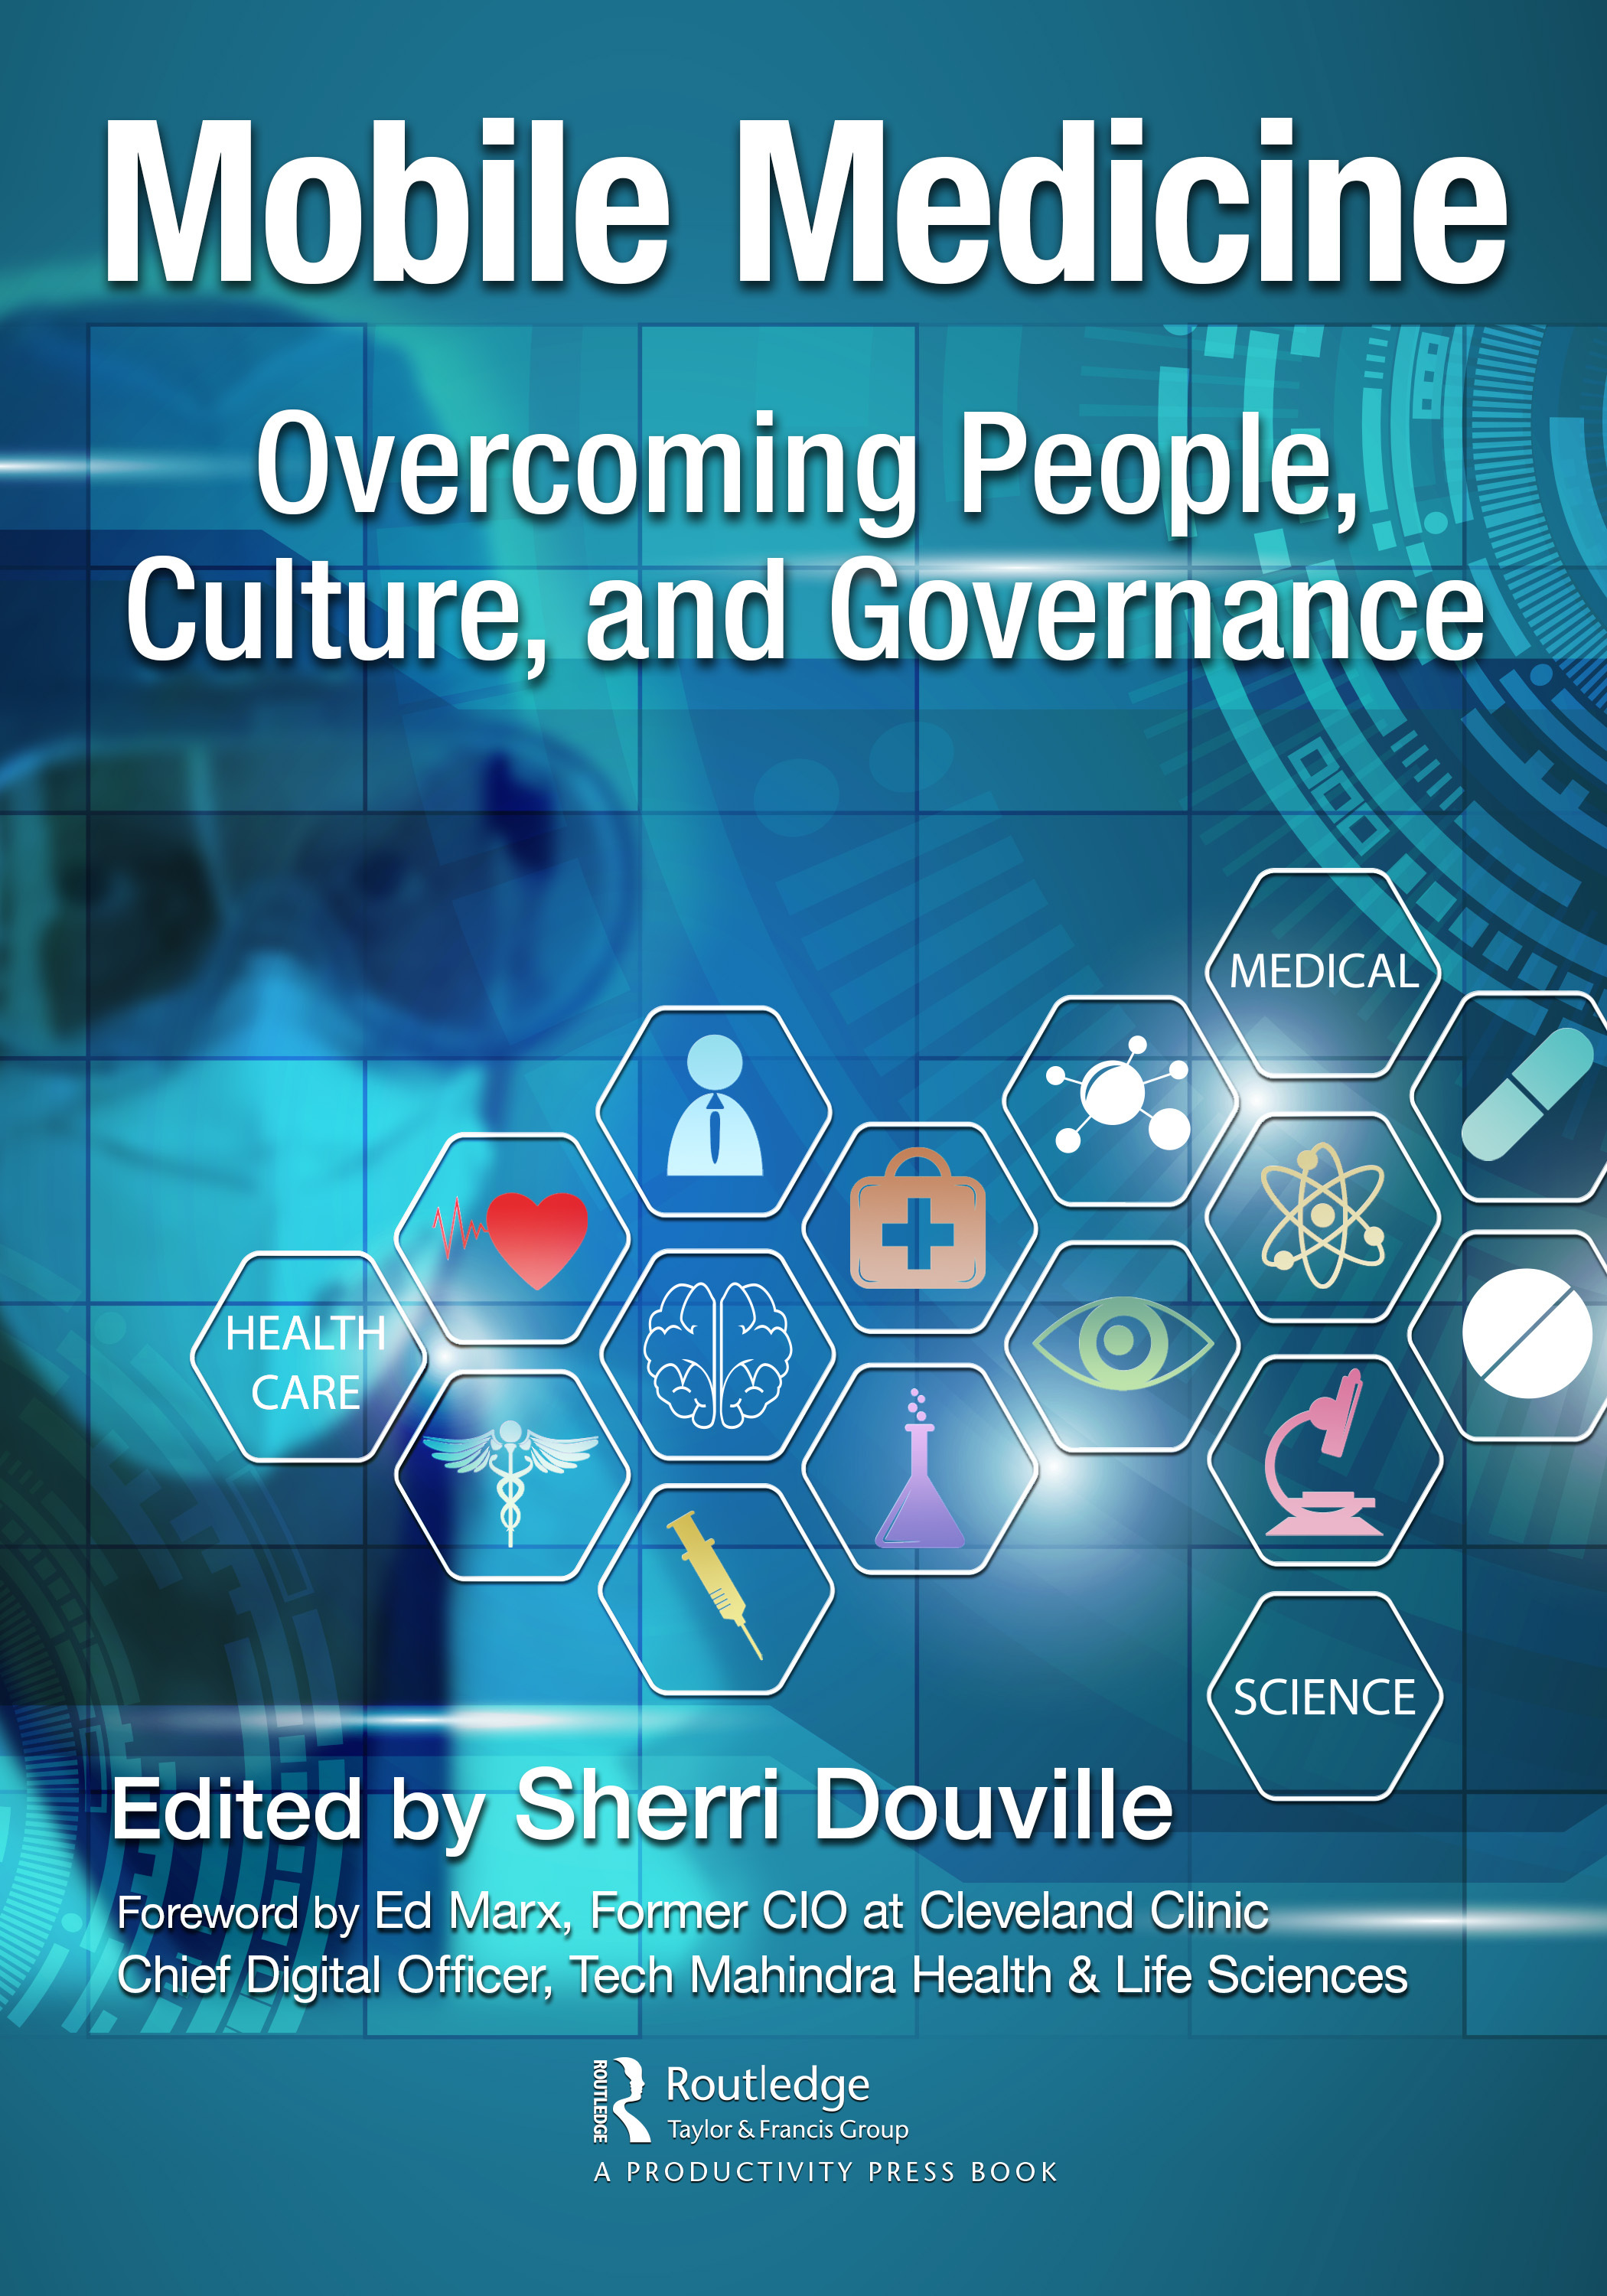 Mobile Medicine Overcoming People, Culture, and Governance